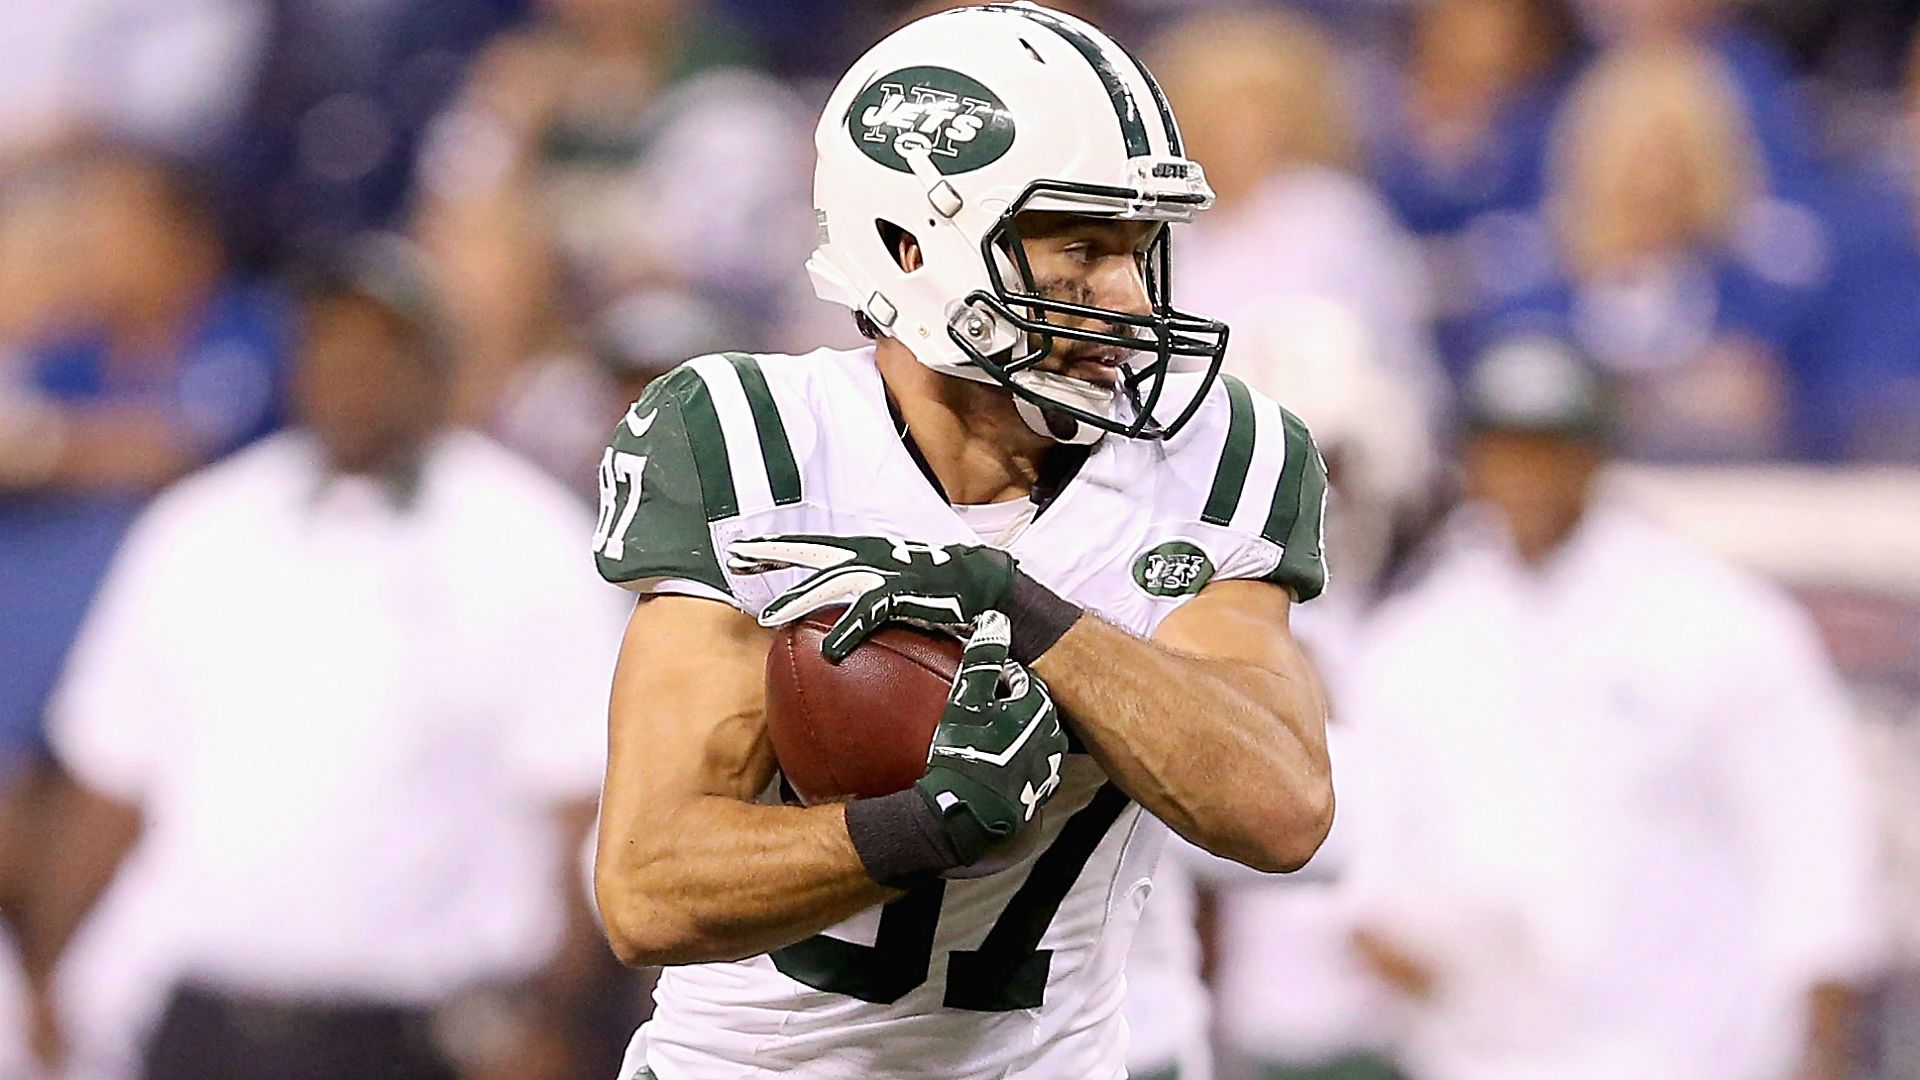 Jets WR Eric Decker to have MRI on knee | NFL | Sporting News